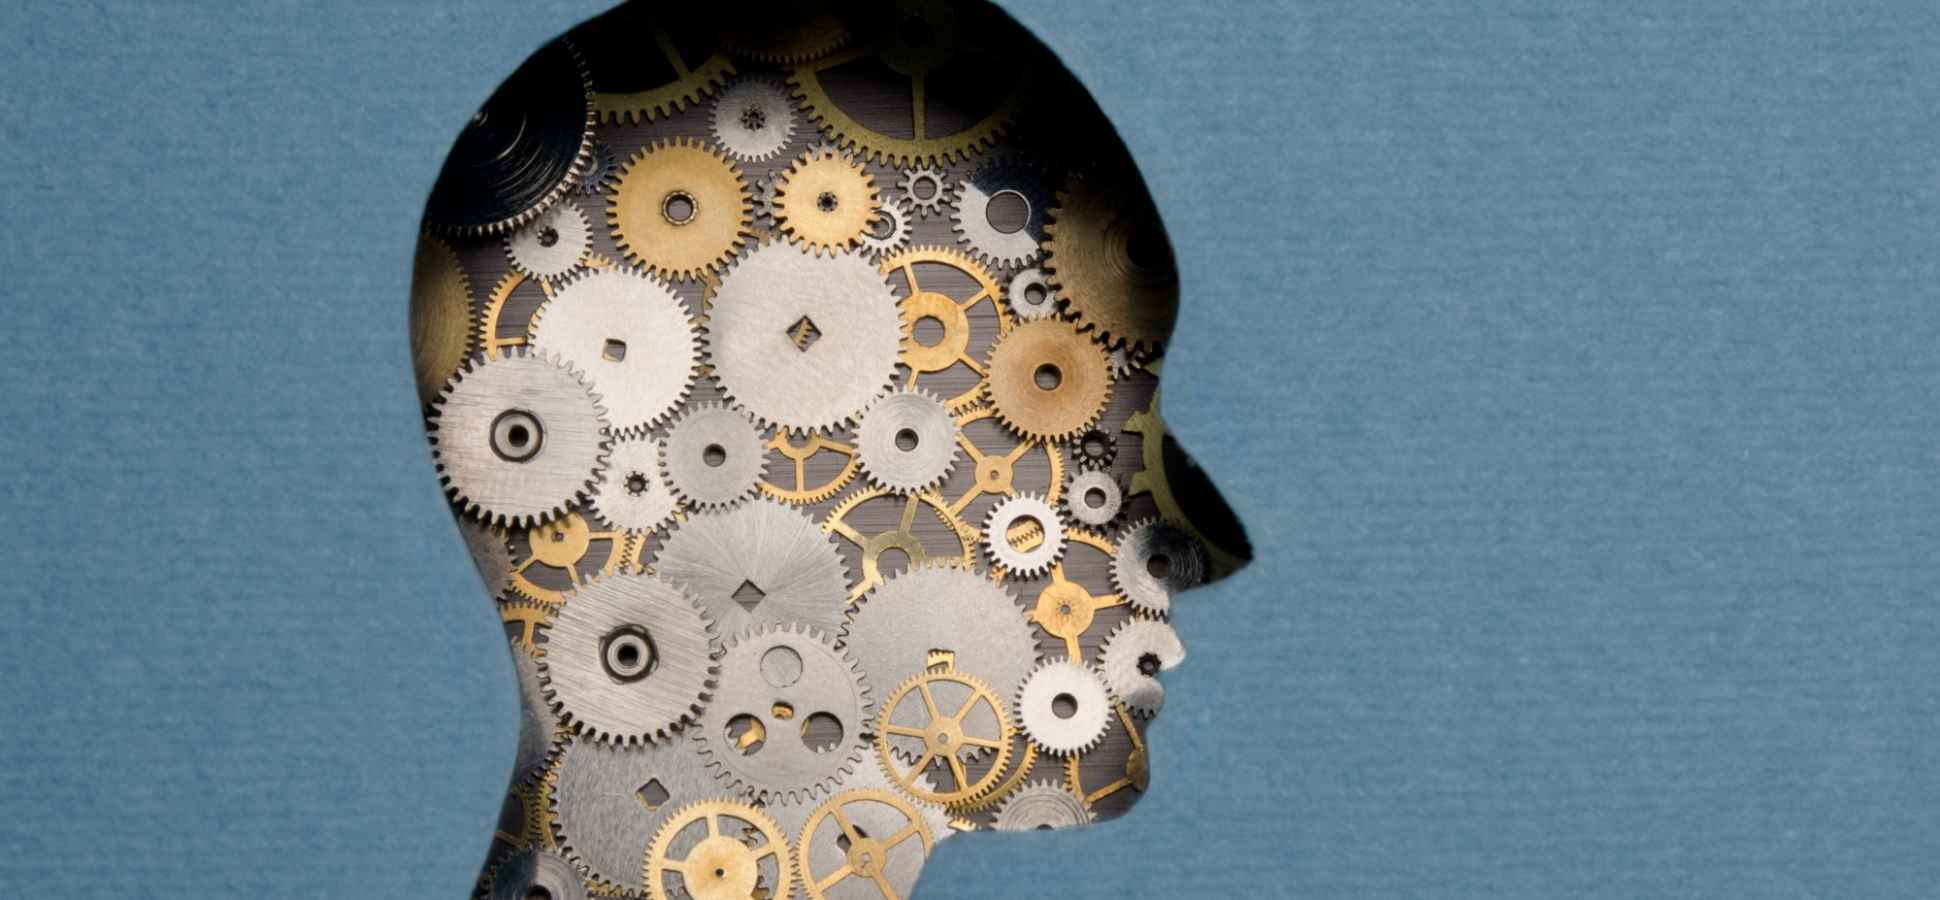 Machine Learning & Artificial Intelligence 101 For Executives